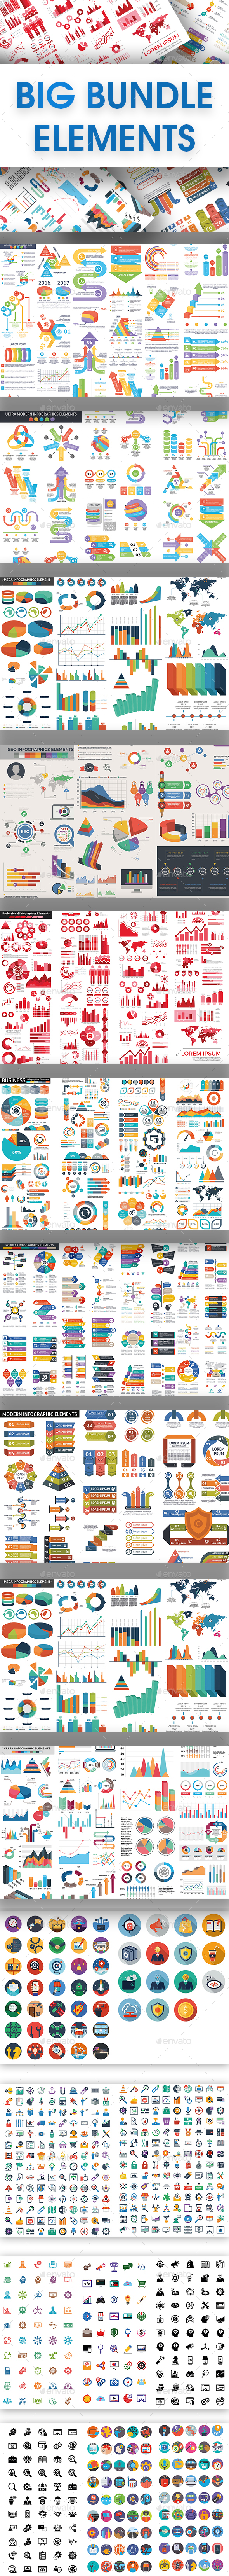 Big Bundle Elements - Infographics